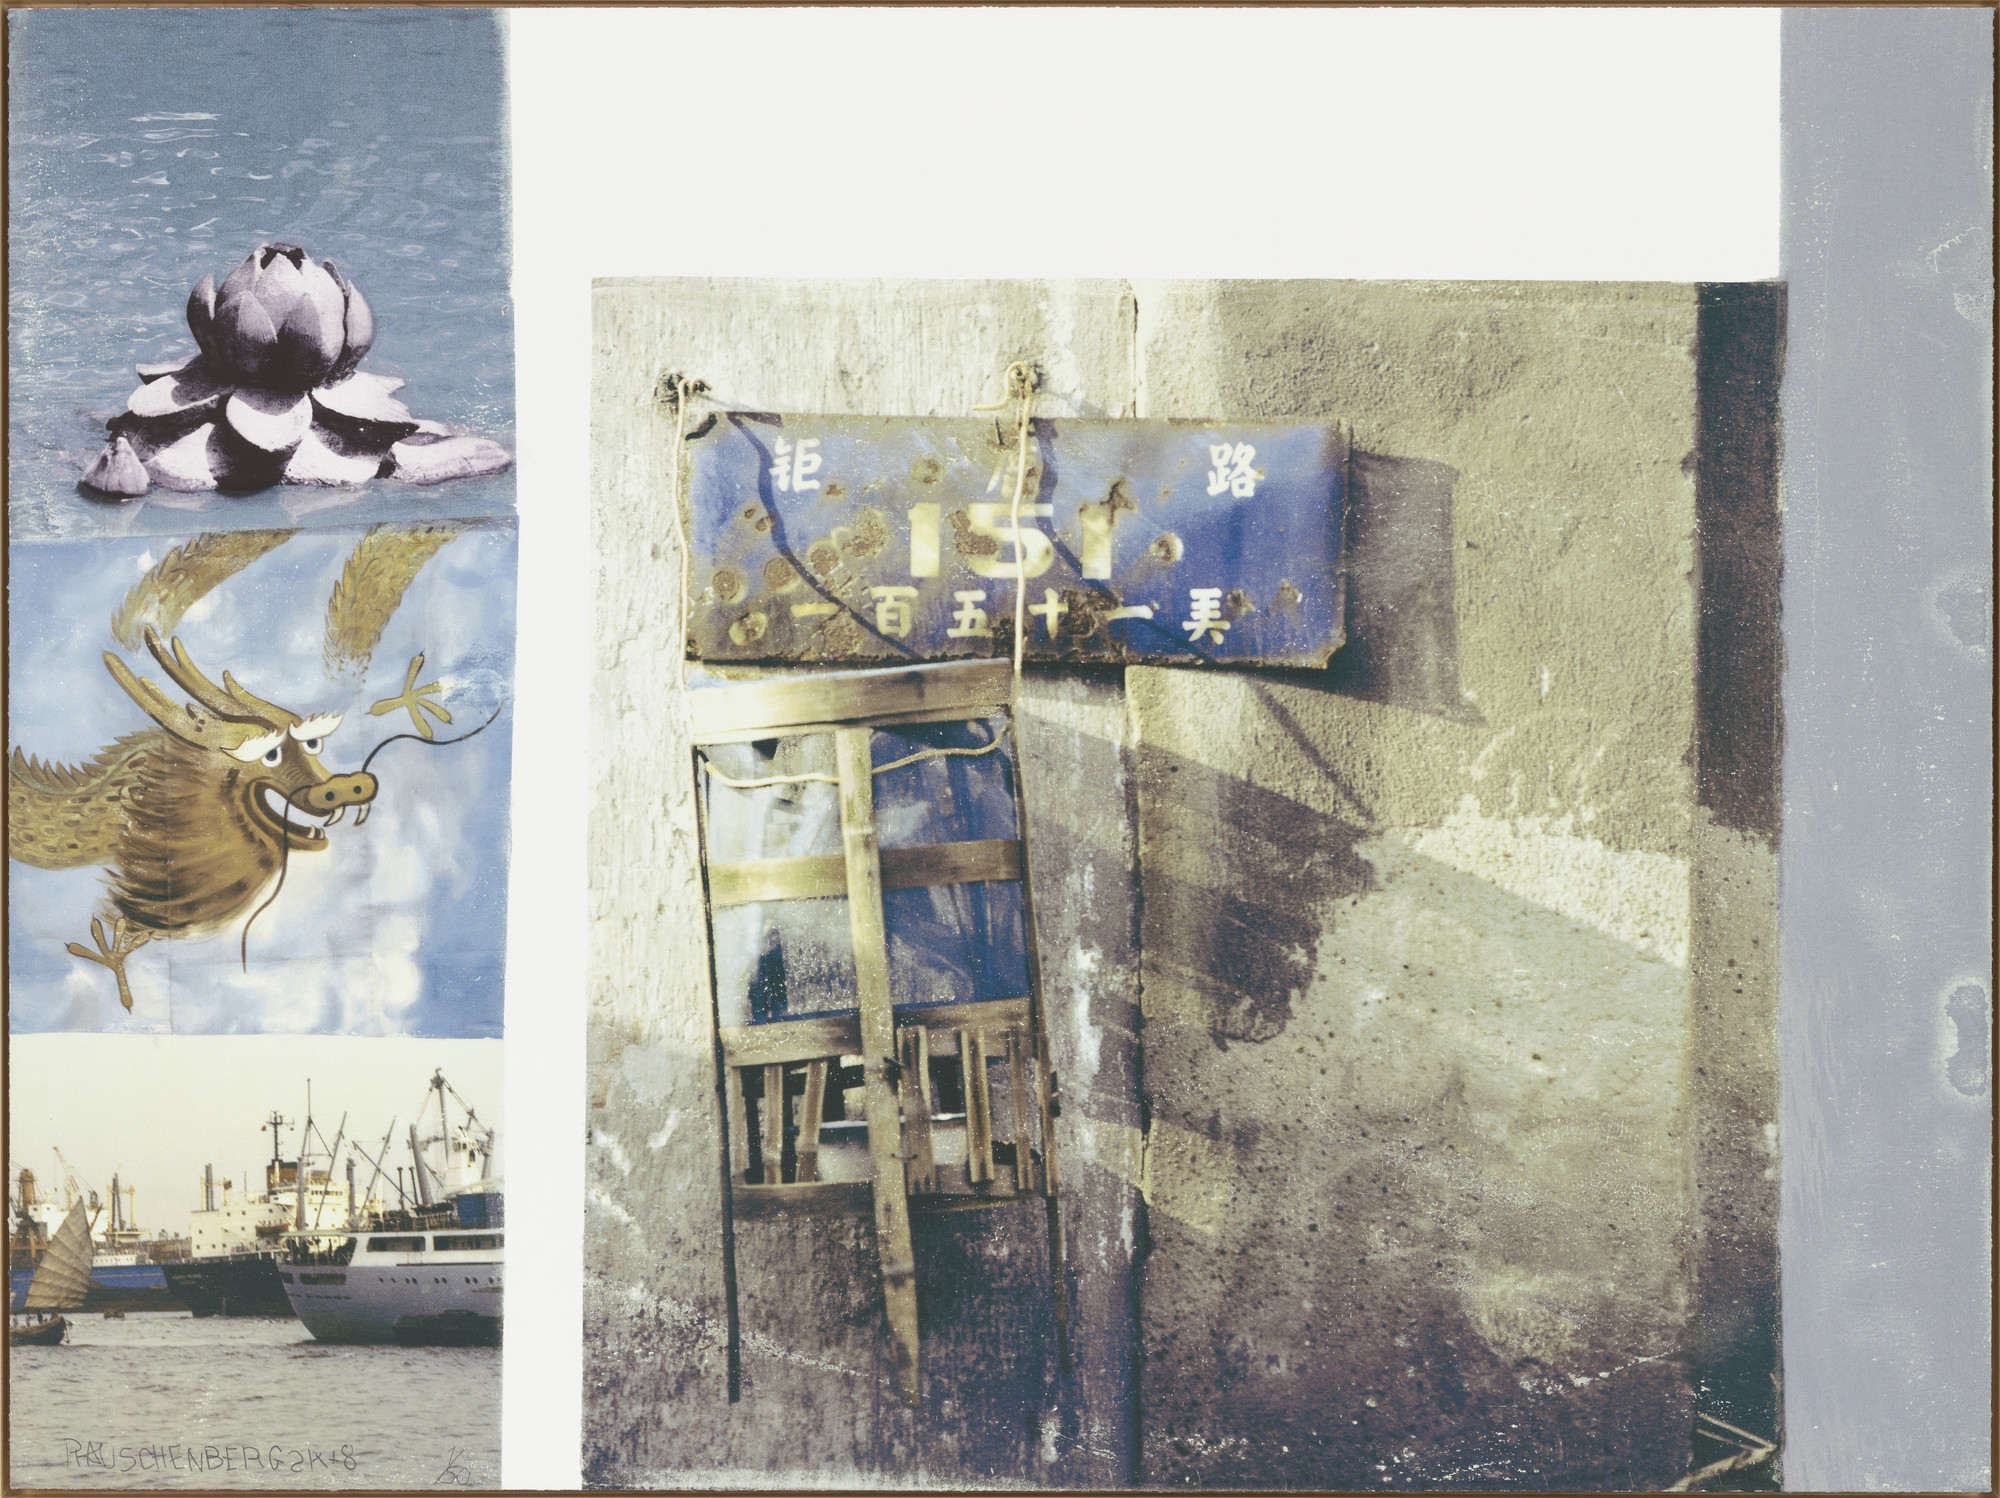 Robert Rauschenberg. Lotus IV from The Lotus Series. 2008